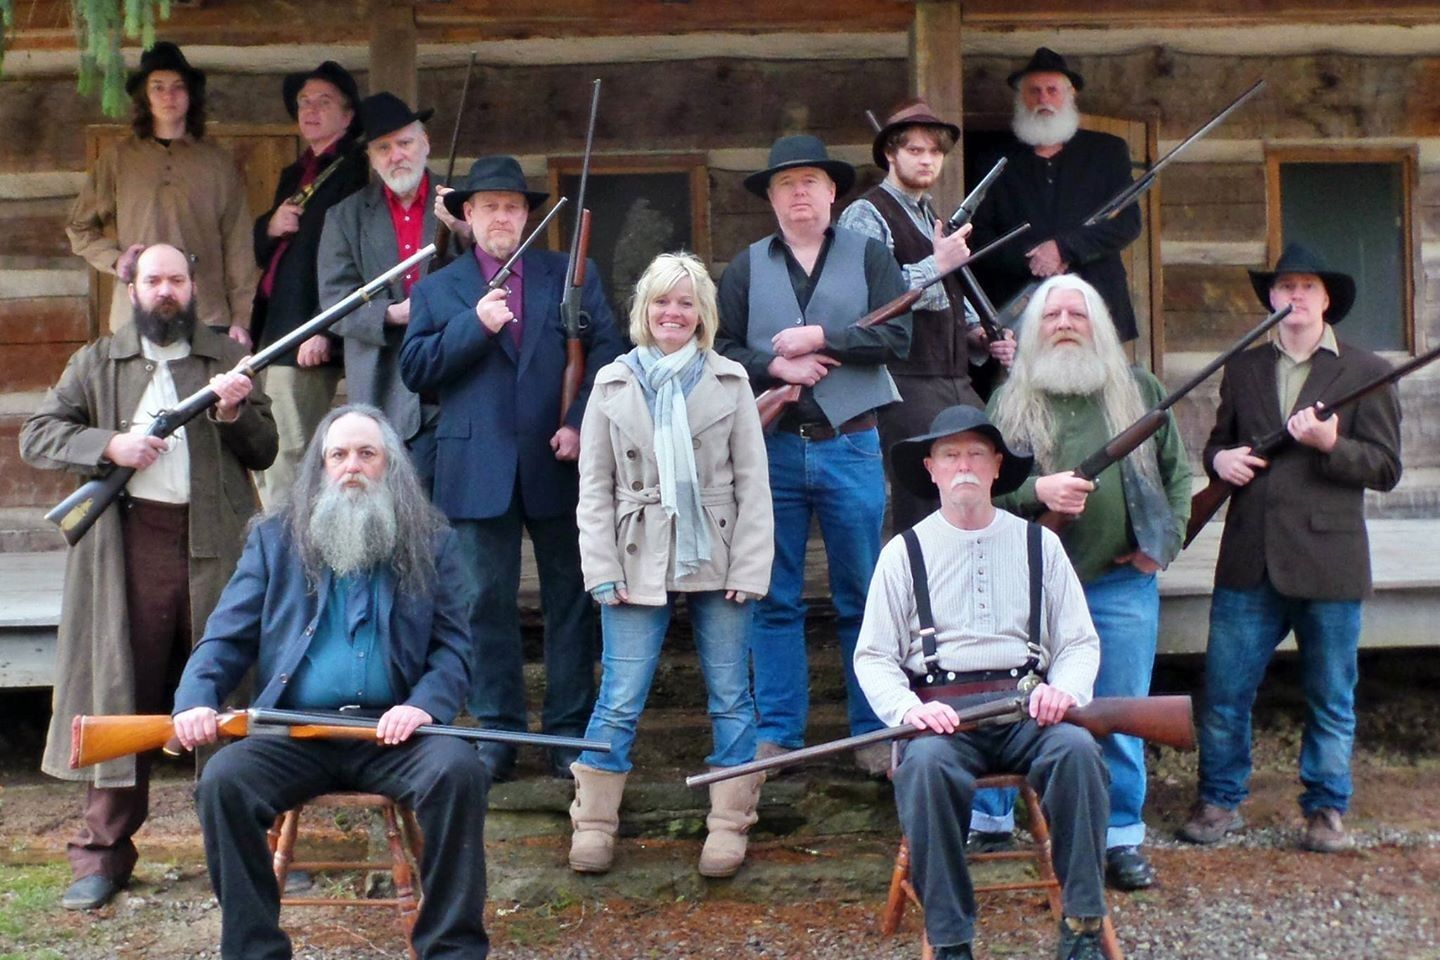 Get your copy of the Hatfield McCoy Country Ultimate Feud